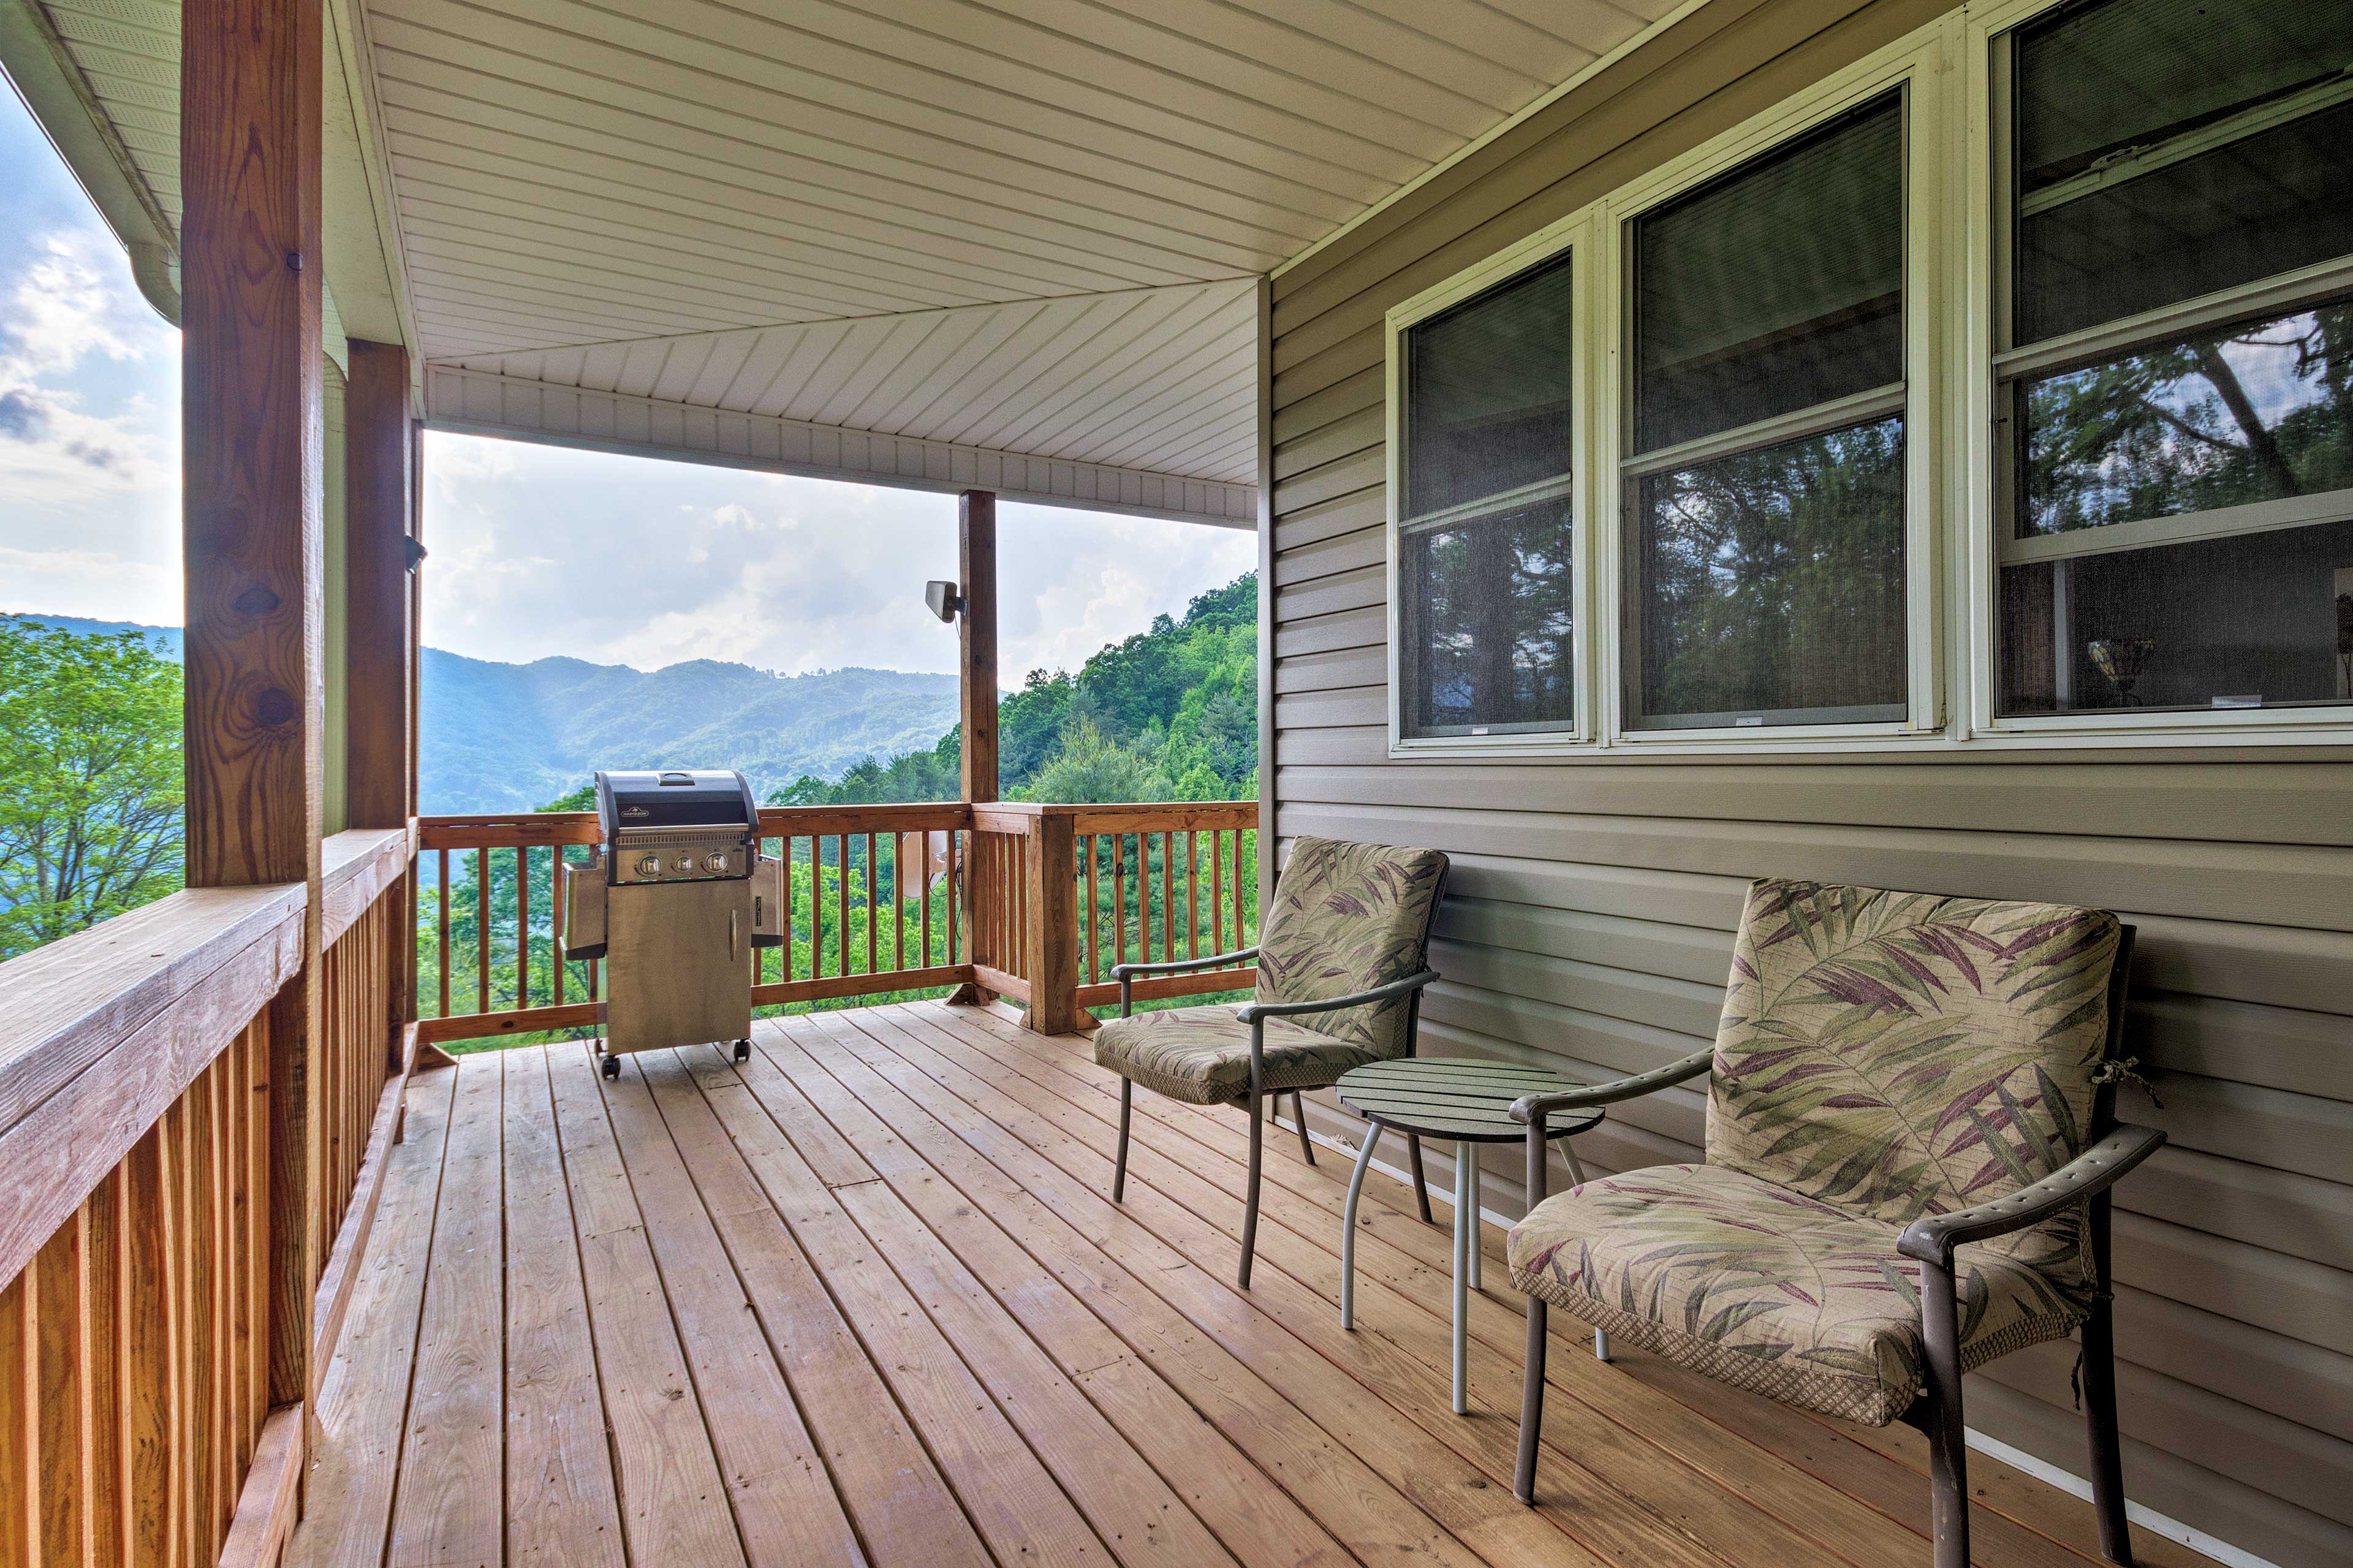 There's plenty of room for everyone on the deck.